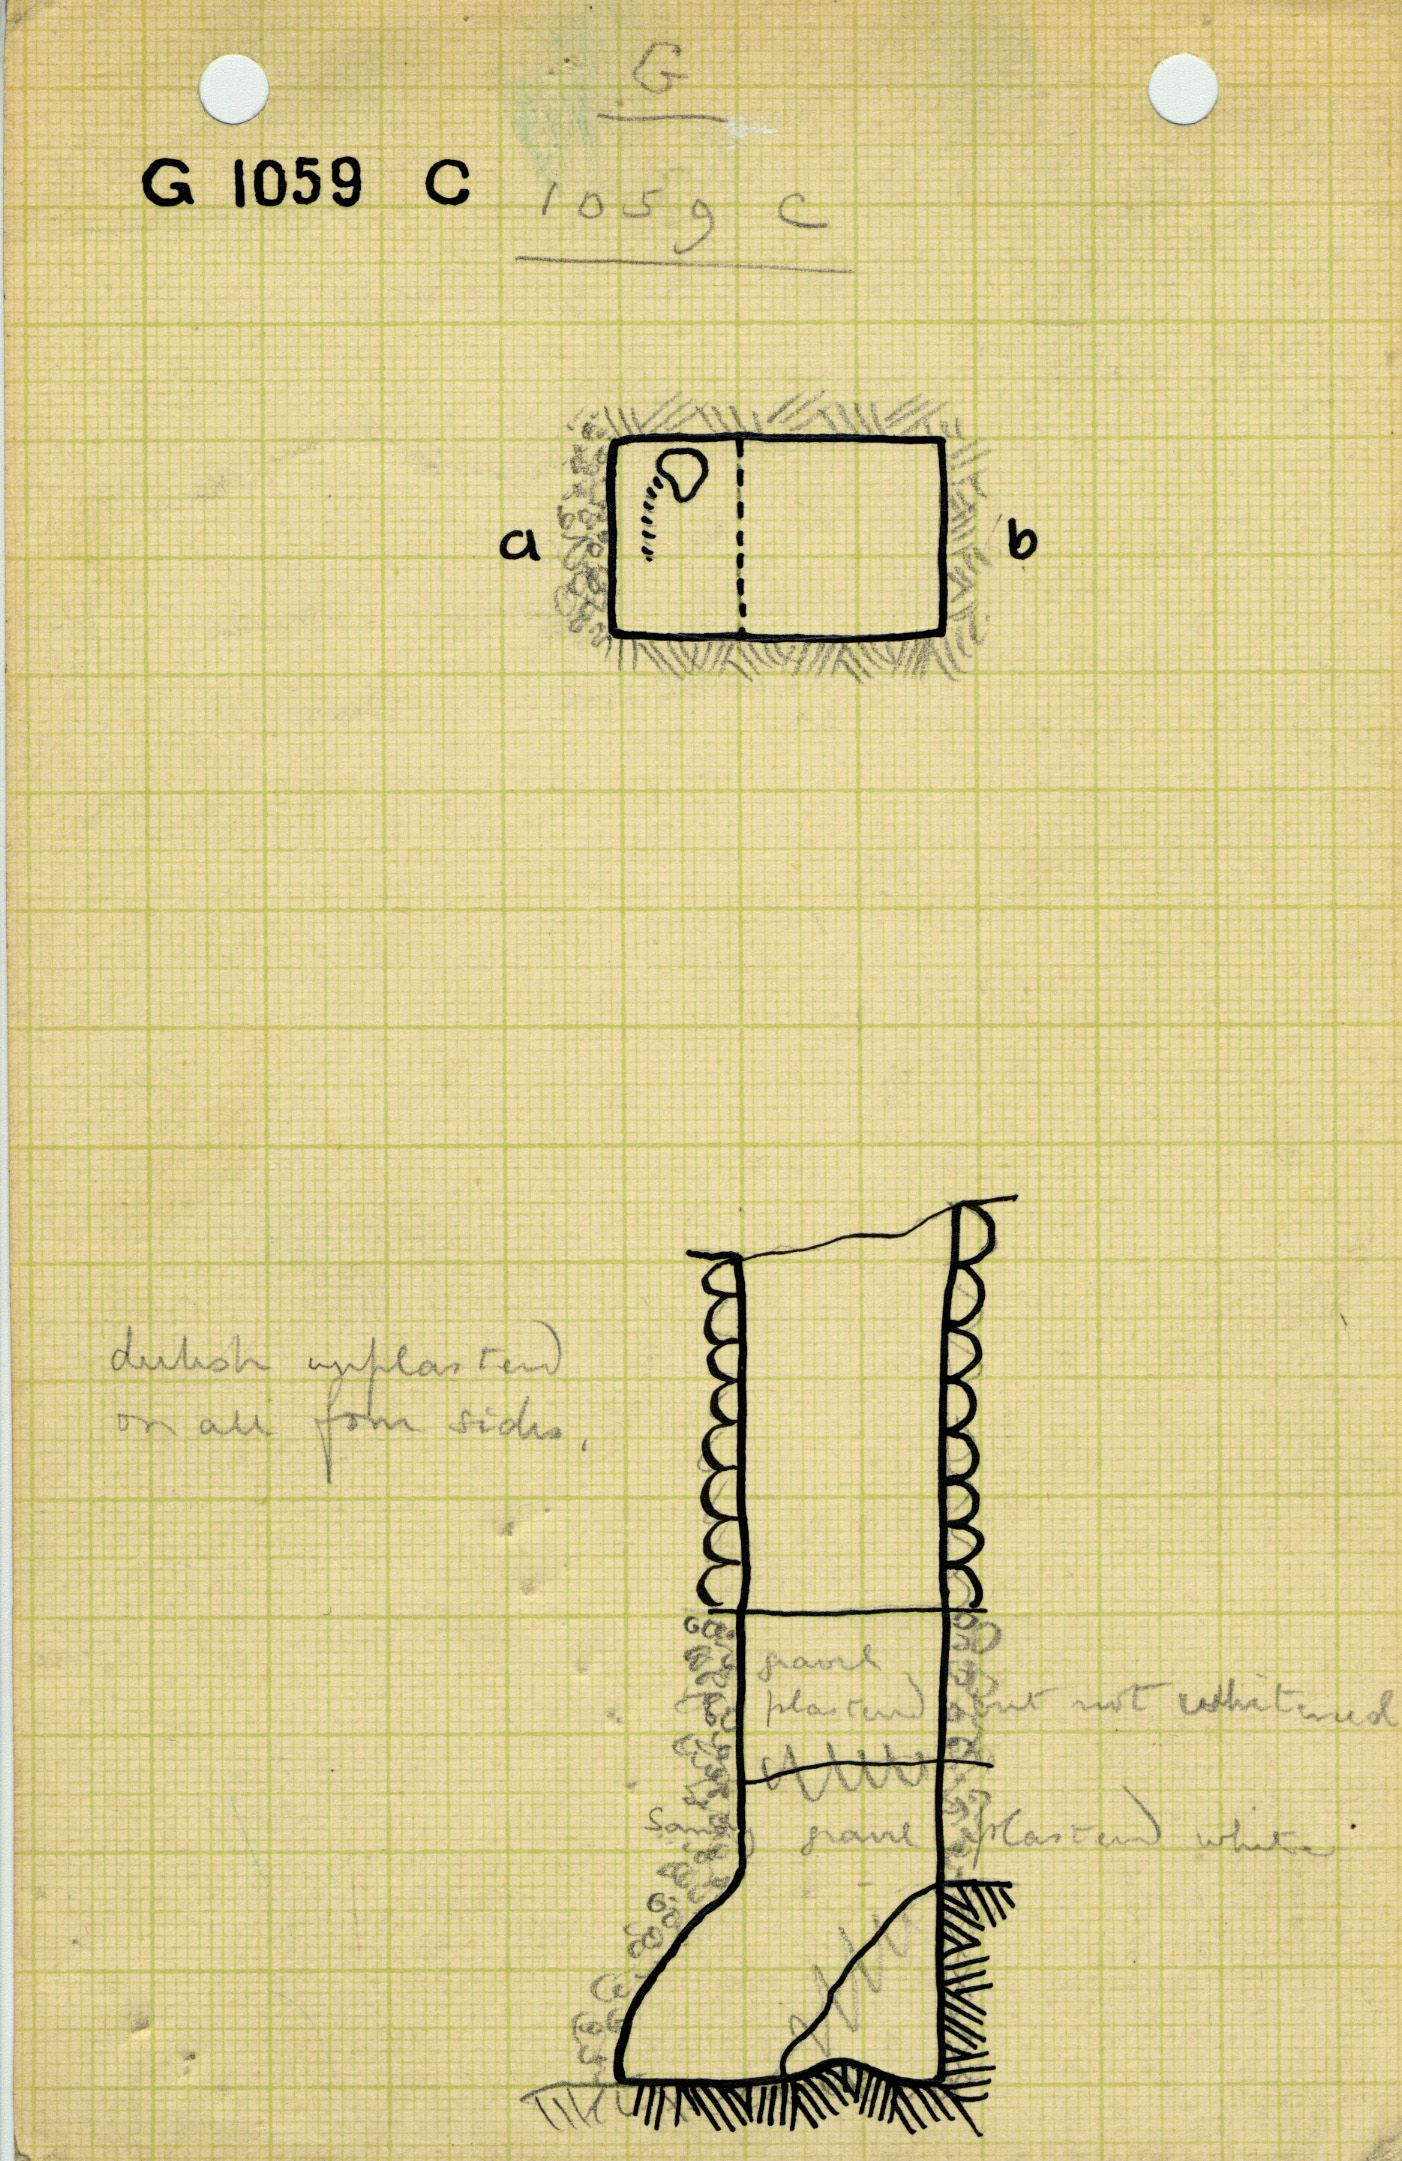 Maps and plans: G 1059, Shaft C